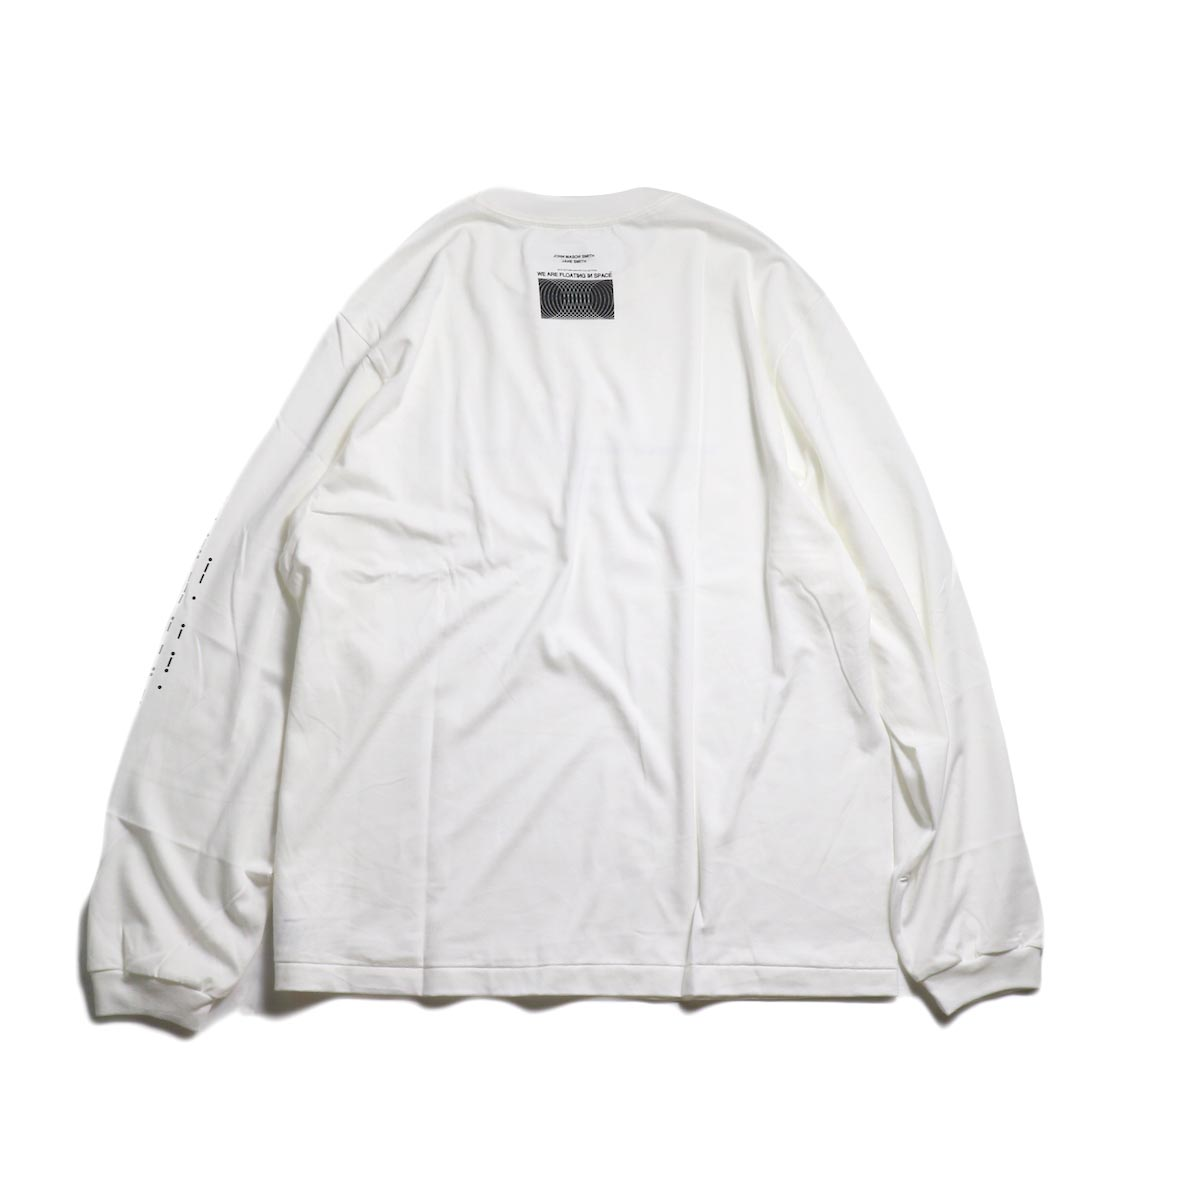 JANE SMITH / MORESE COD L/S T-SHIRT -White 背面